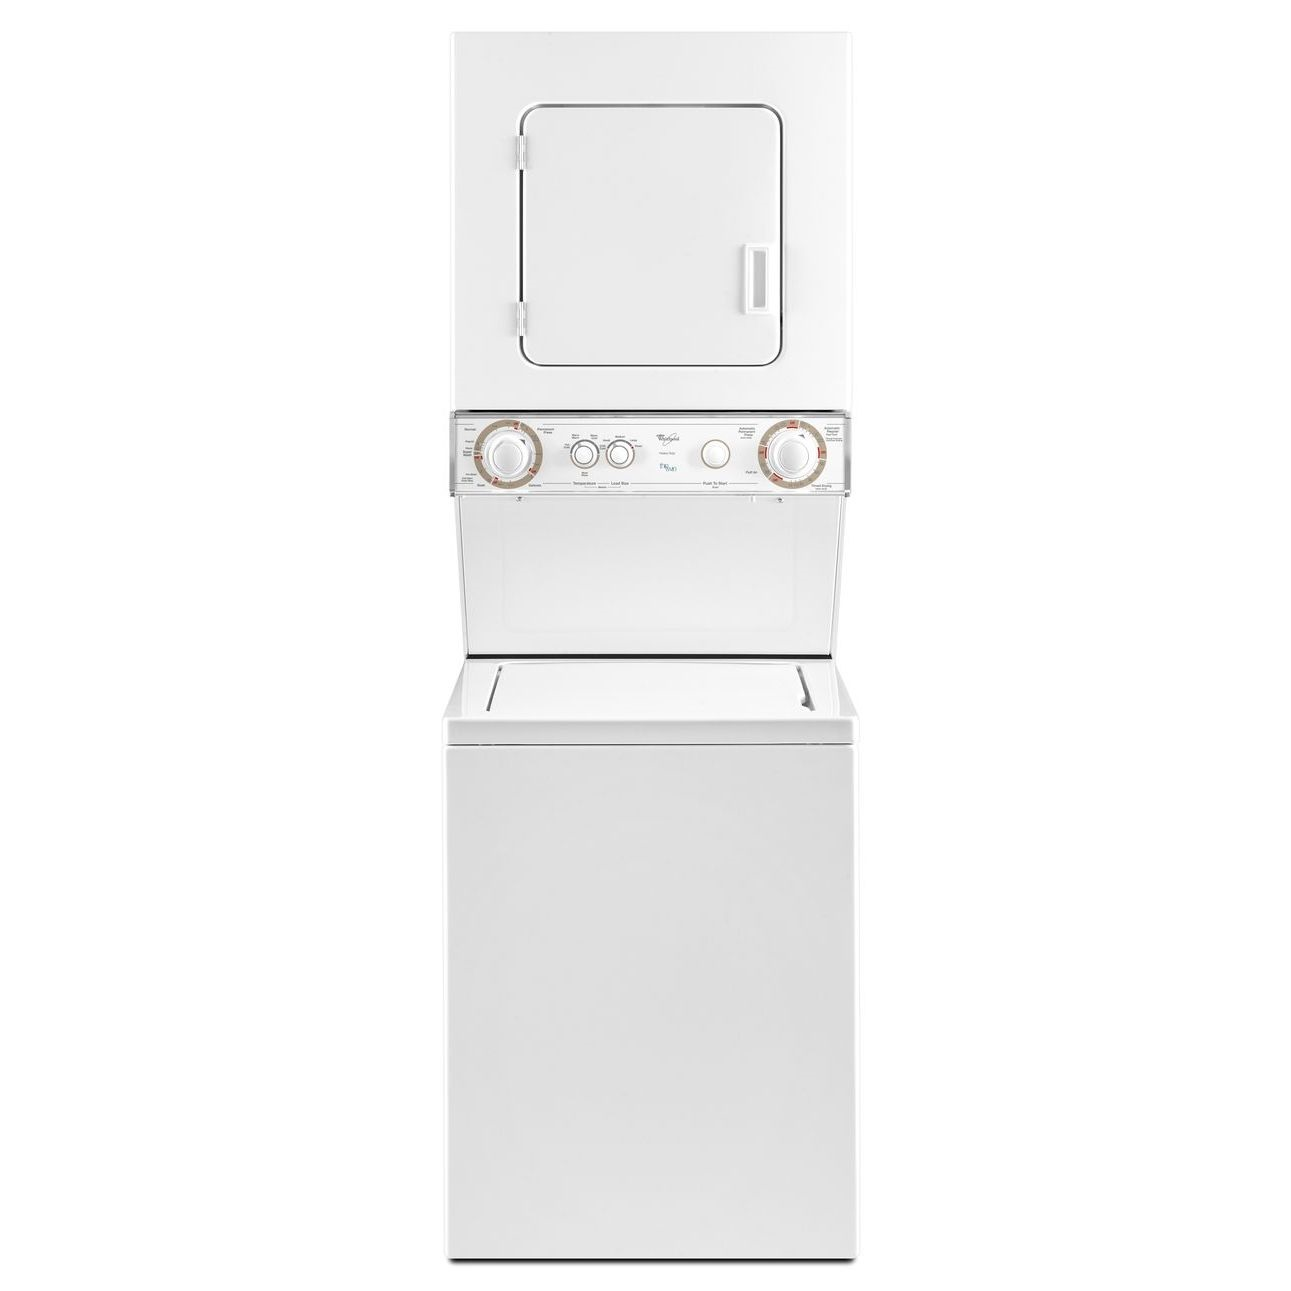 Whirlpool Combination Washer and Gas Dryer